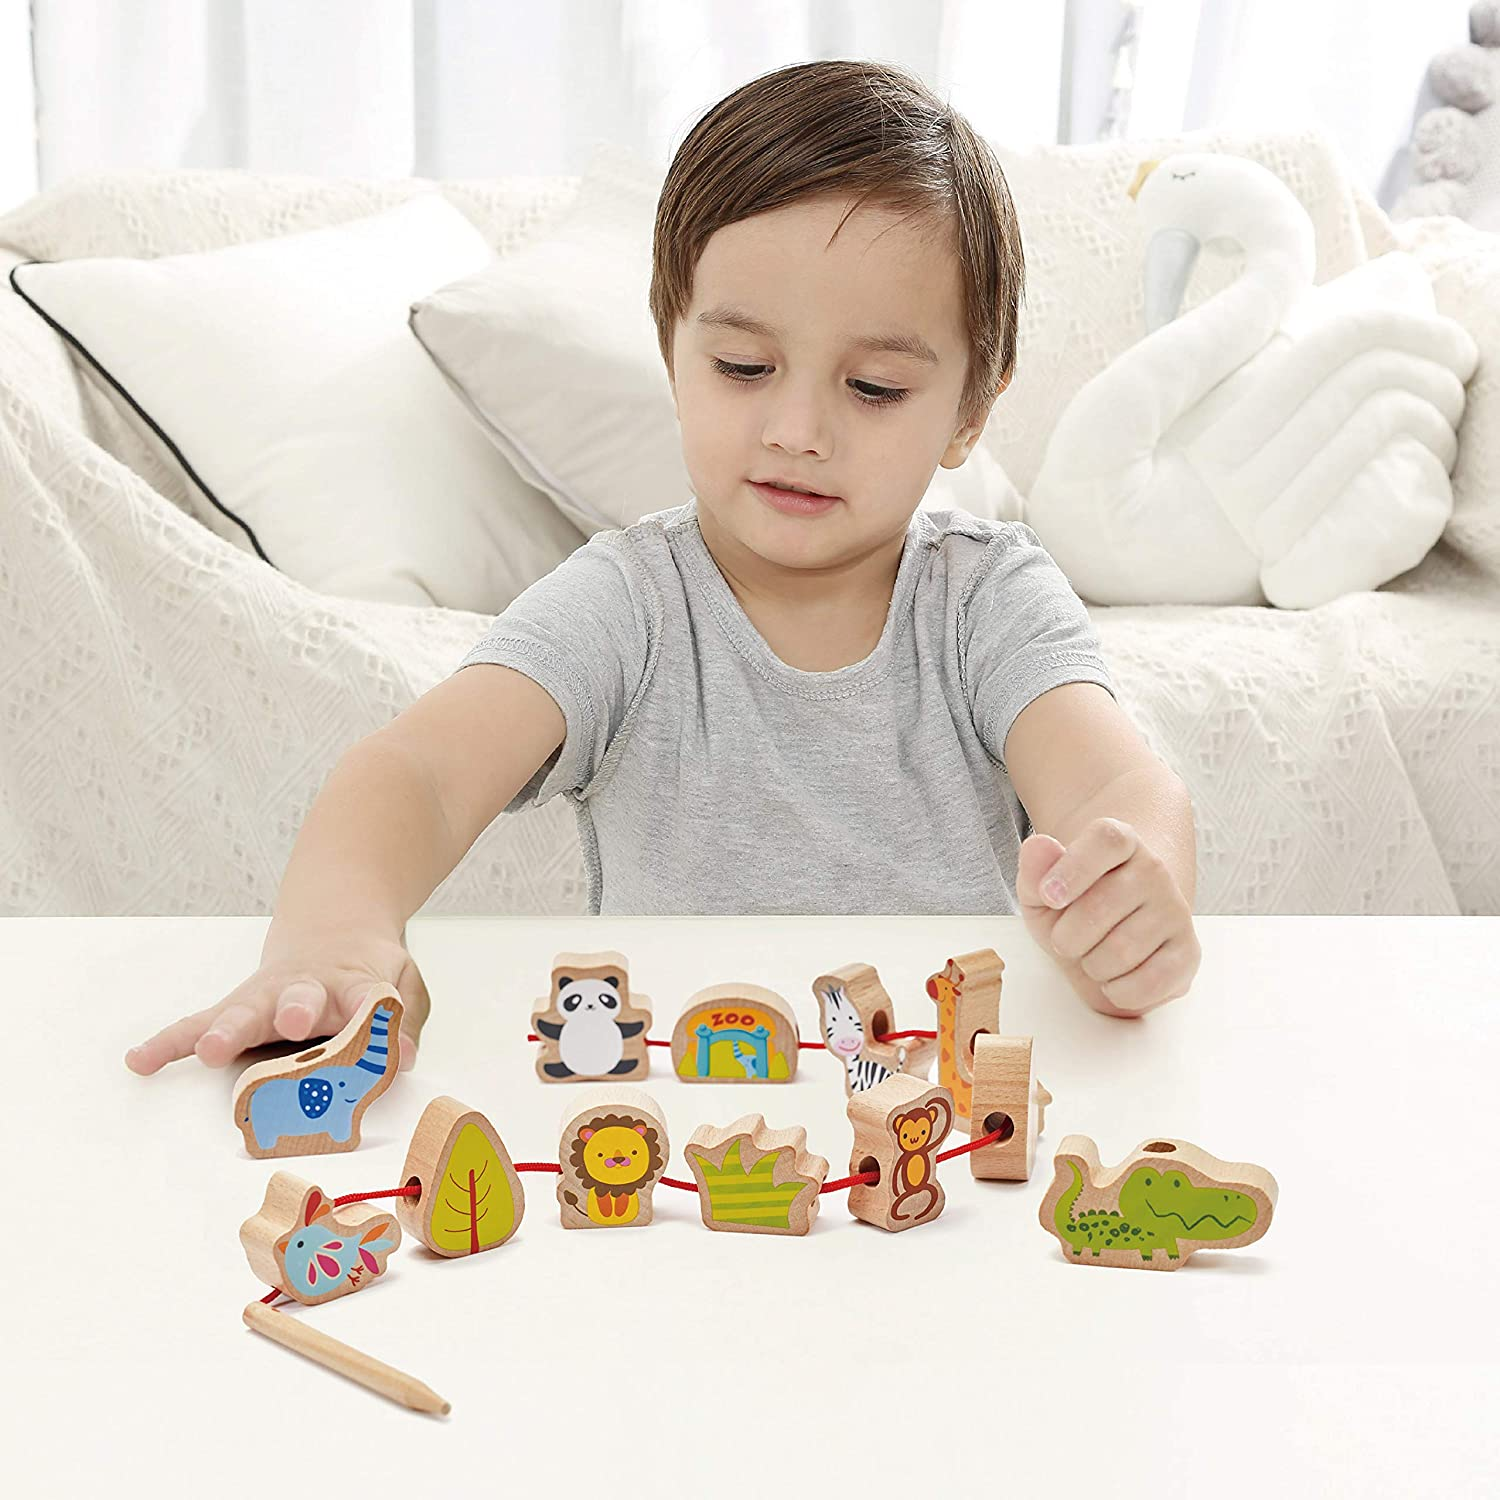 Classic World Zoo Beads Wooden Lacing Toy for Baby Toddler Early Learning Education